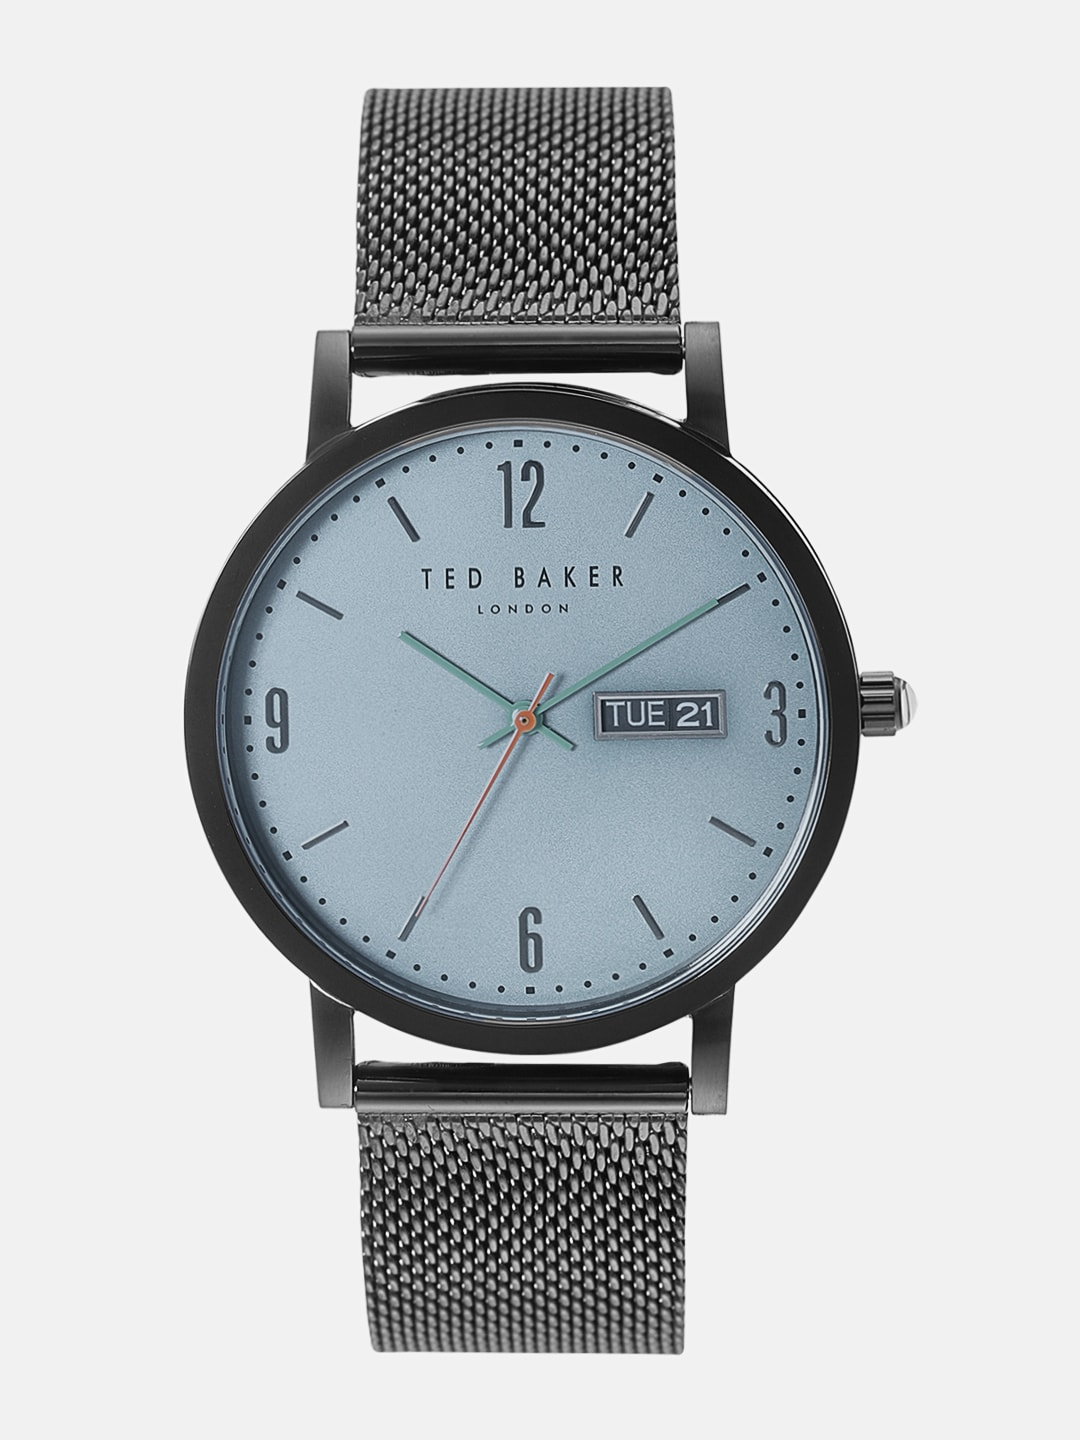 29640ae7af10 Ted Baker Watches - Buy Ted Baker Watches online in India